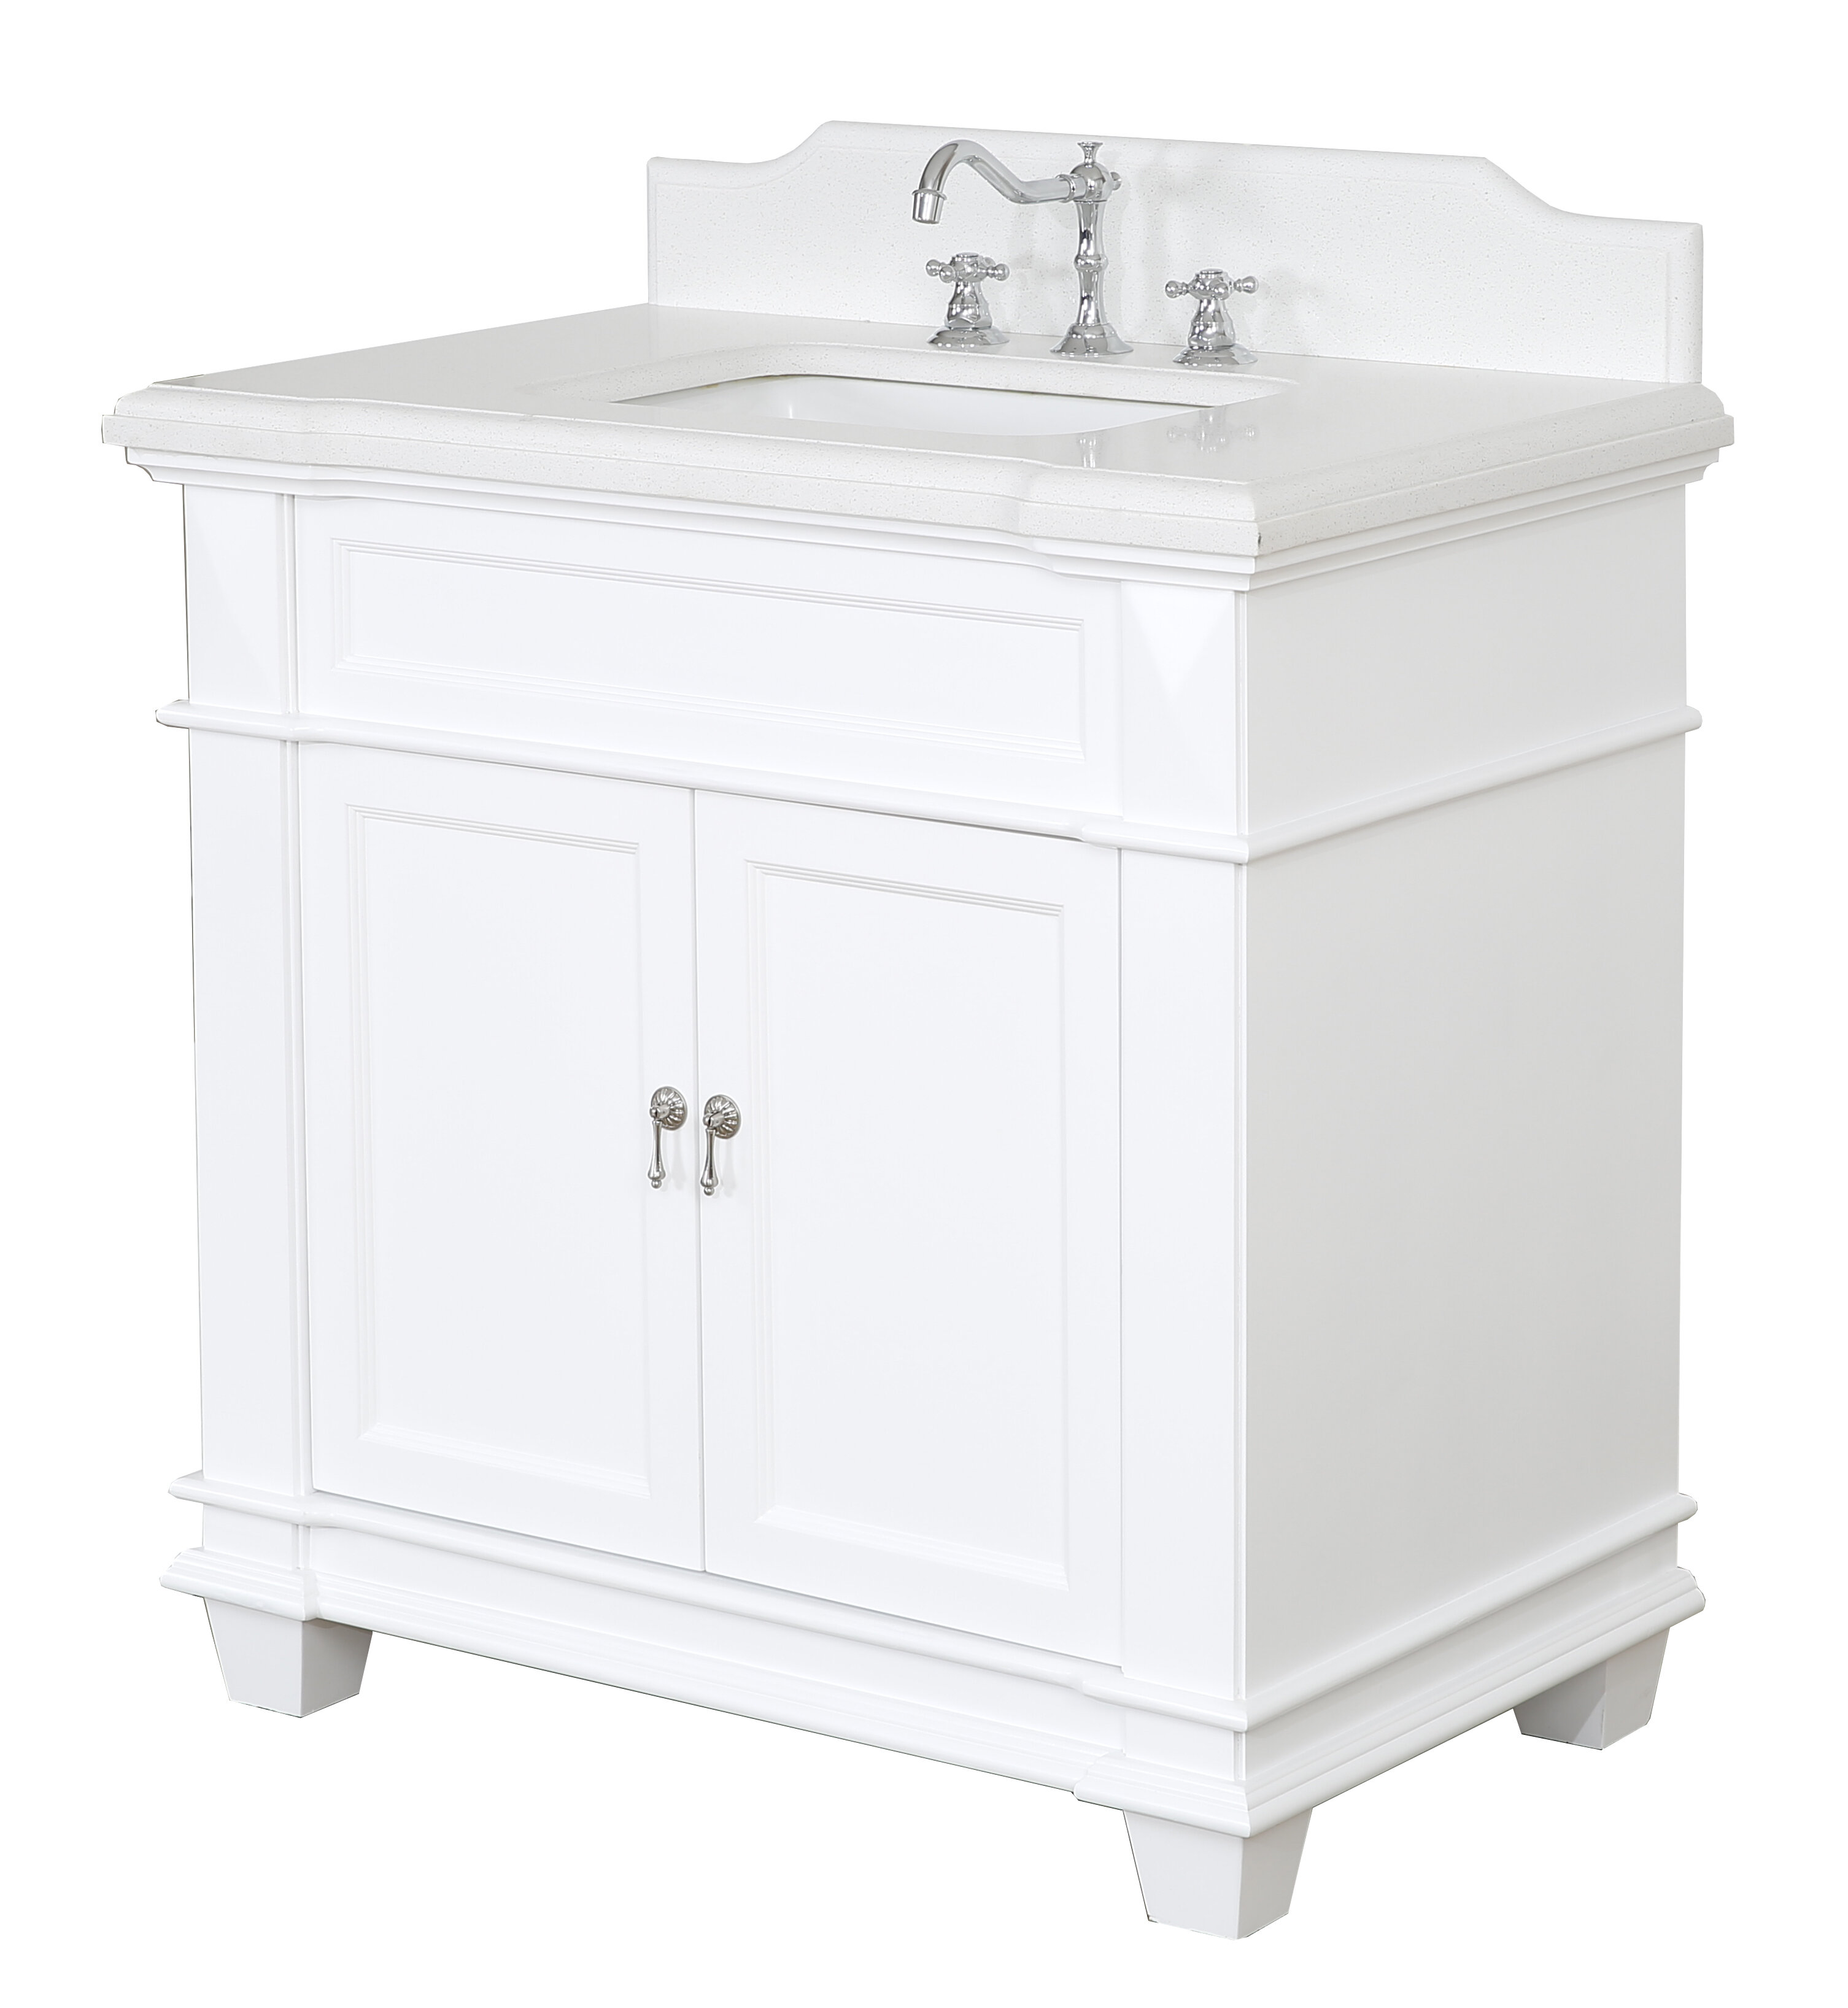 w bathroom d in pin is rain sutton living here bath homedepot available stewart the at x pictured collection water vanity martha